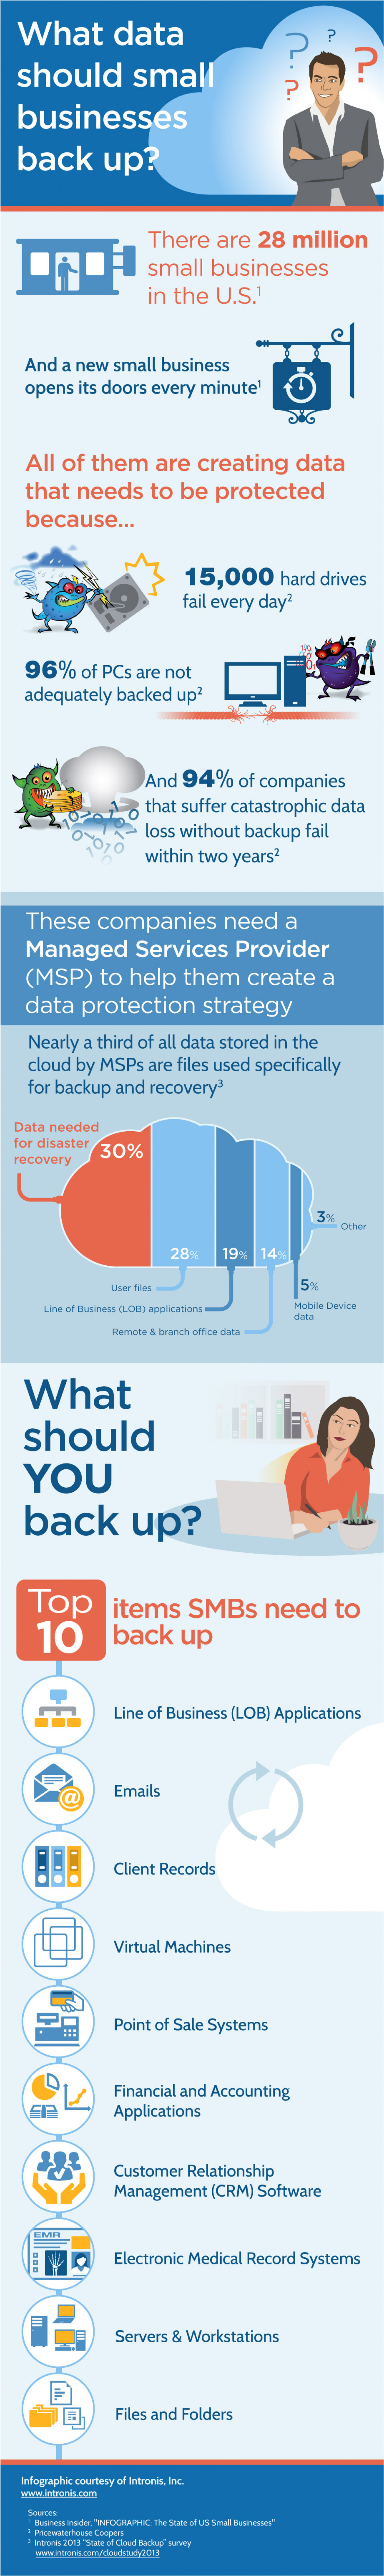 What Data Should Small Businesses Back Up? Infographic